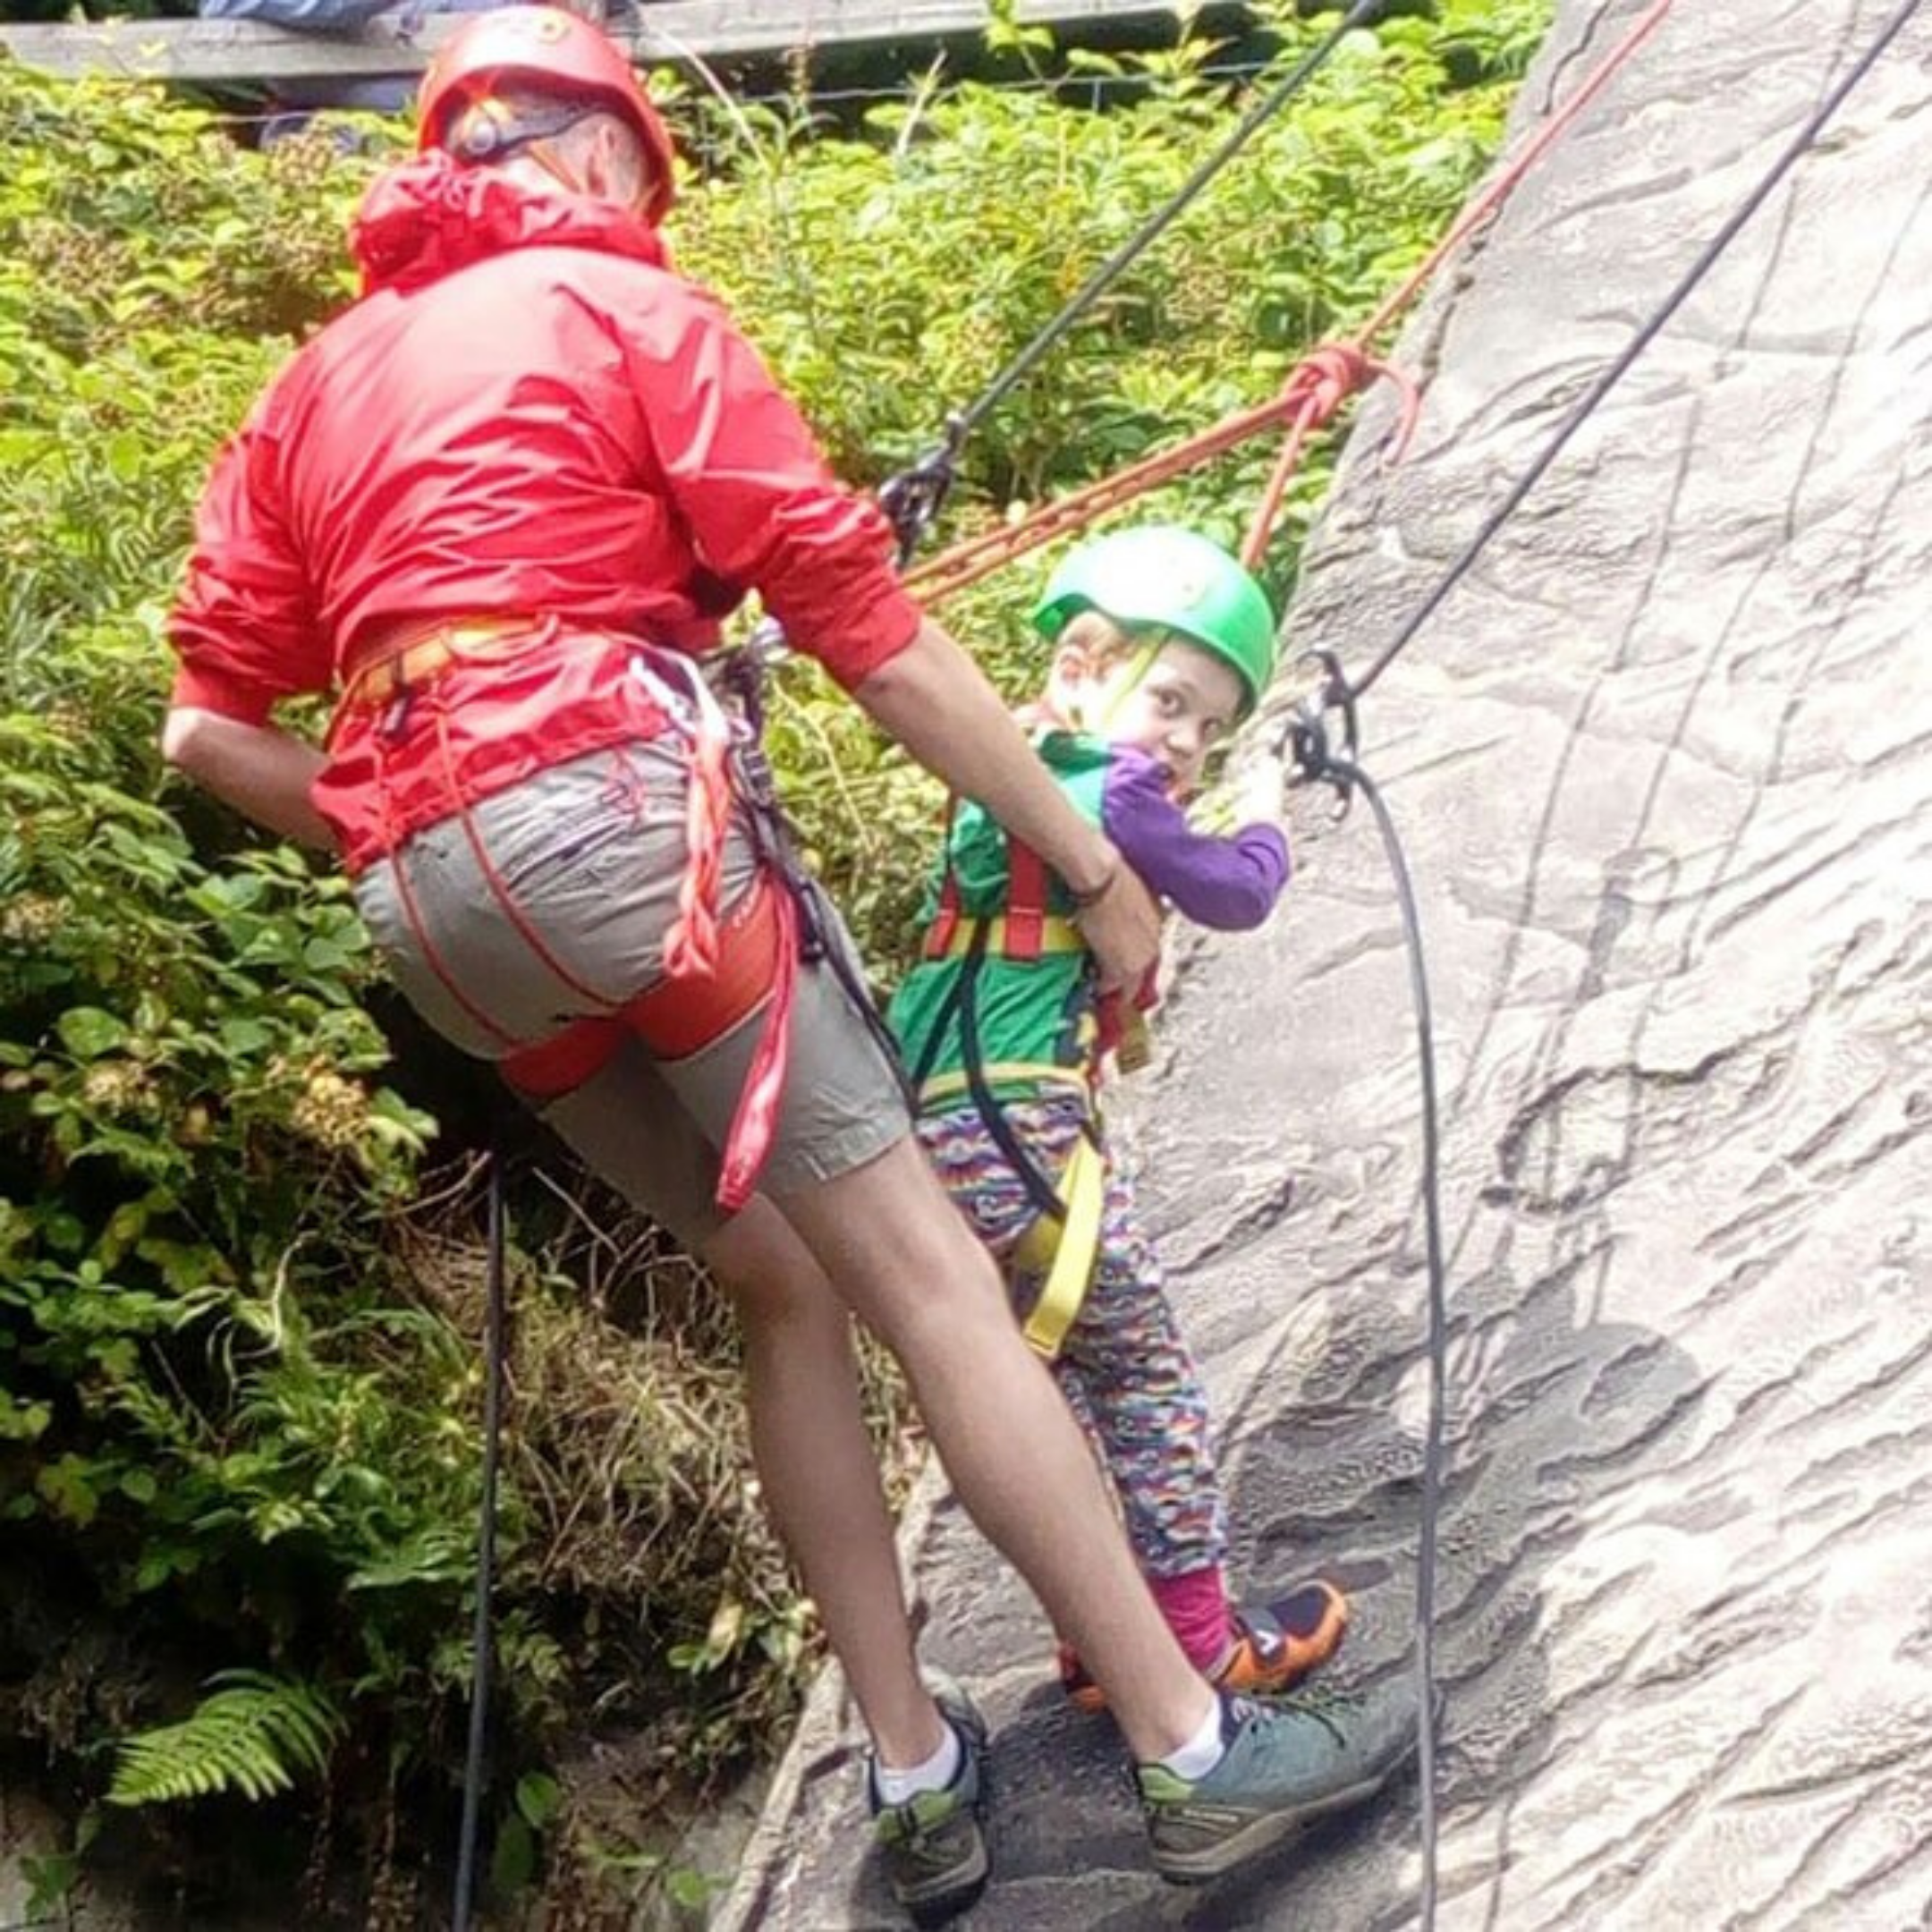 A young boy and a man abseiling together